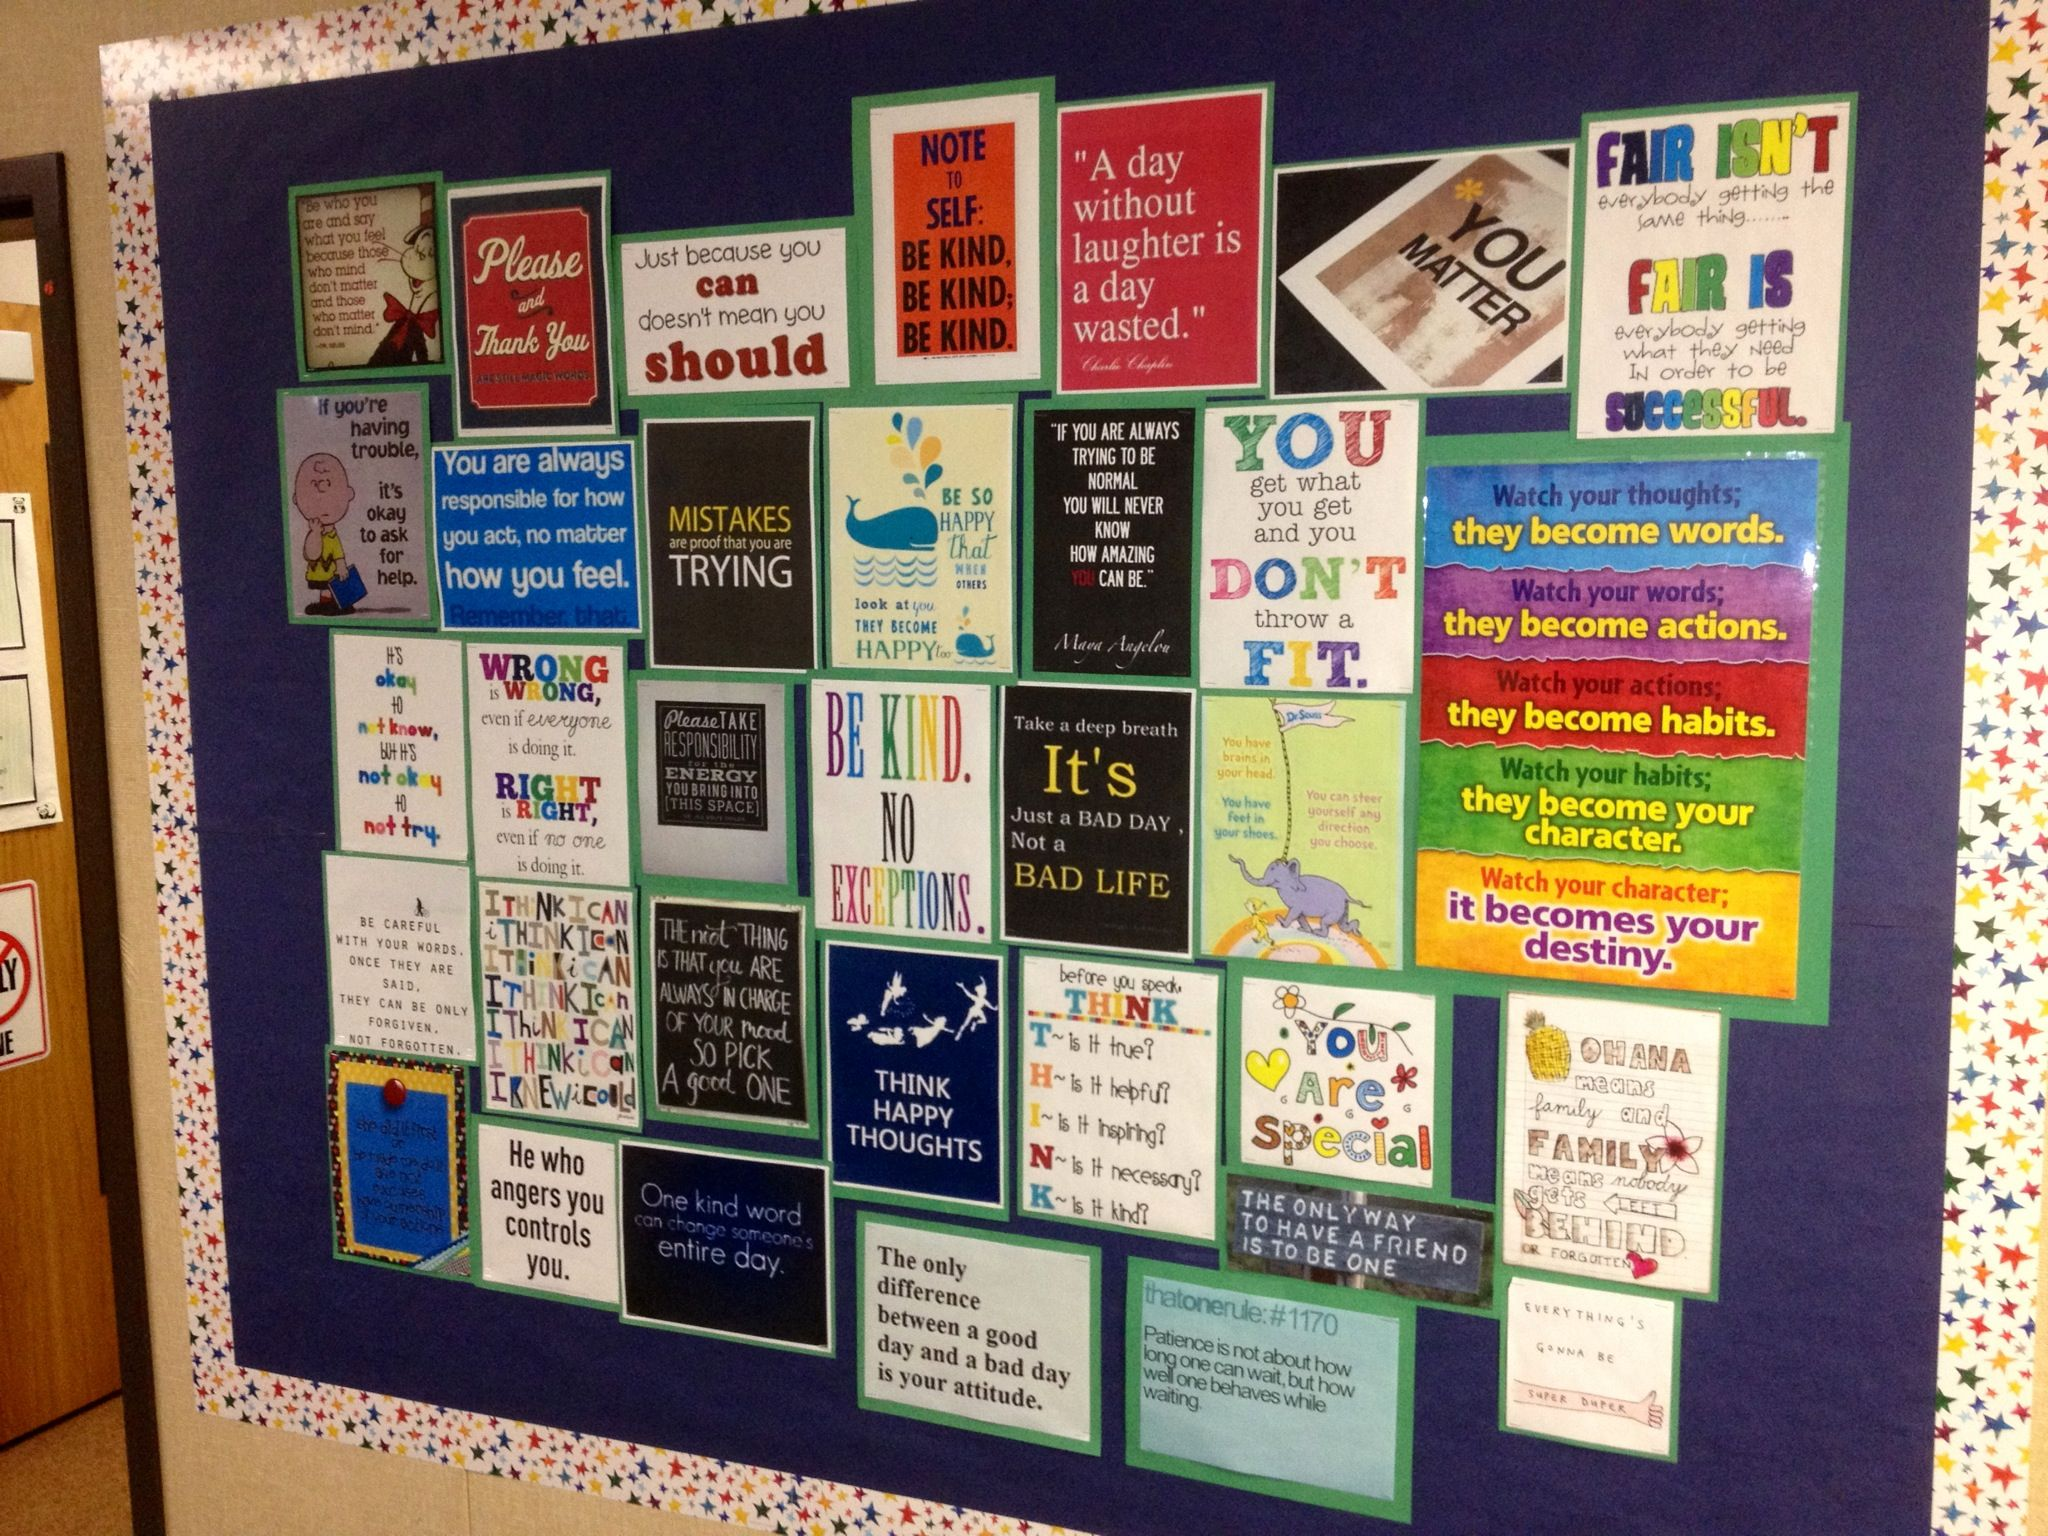 I Have Several Small Bulletin Boards. I Could Use Some Of These Ideas.